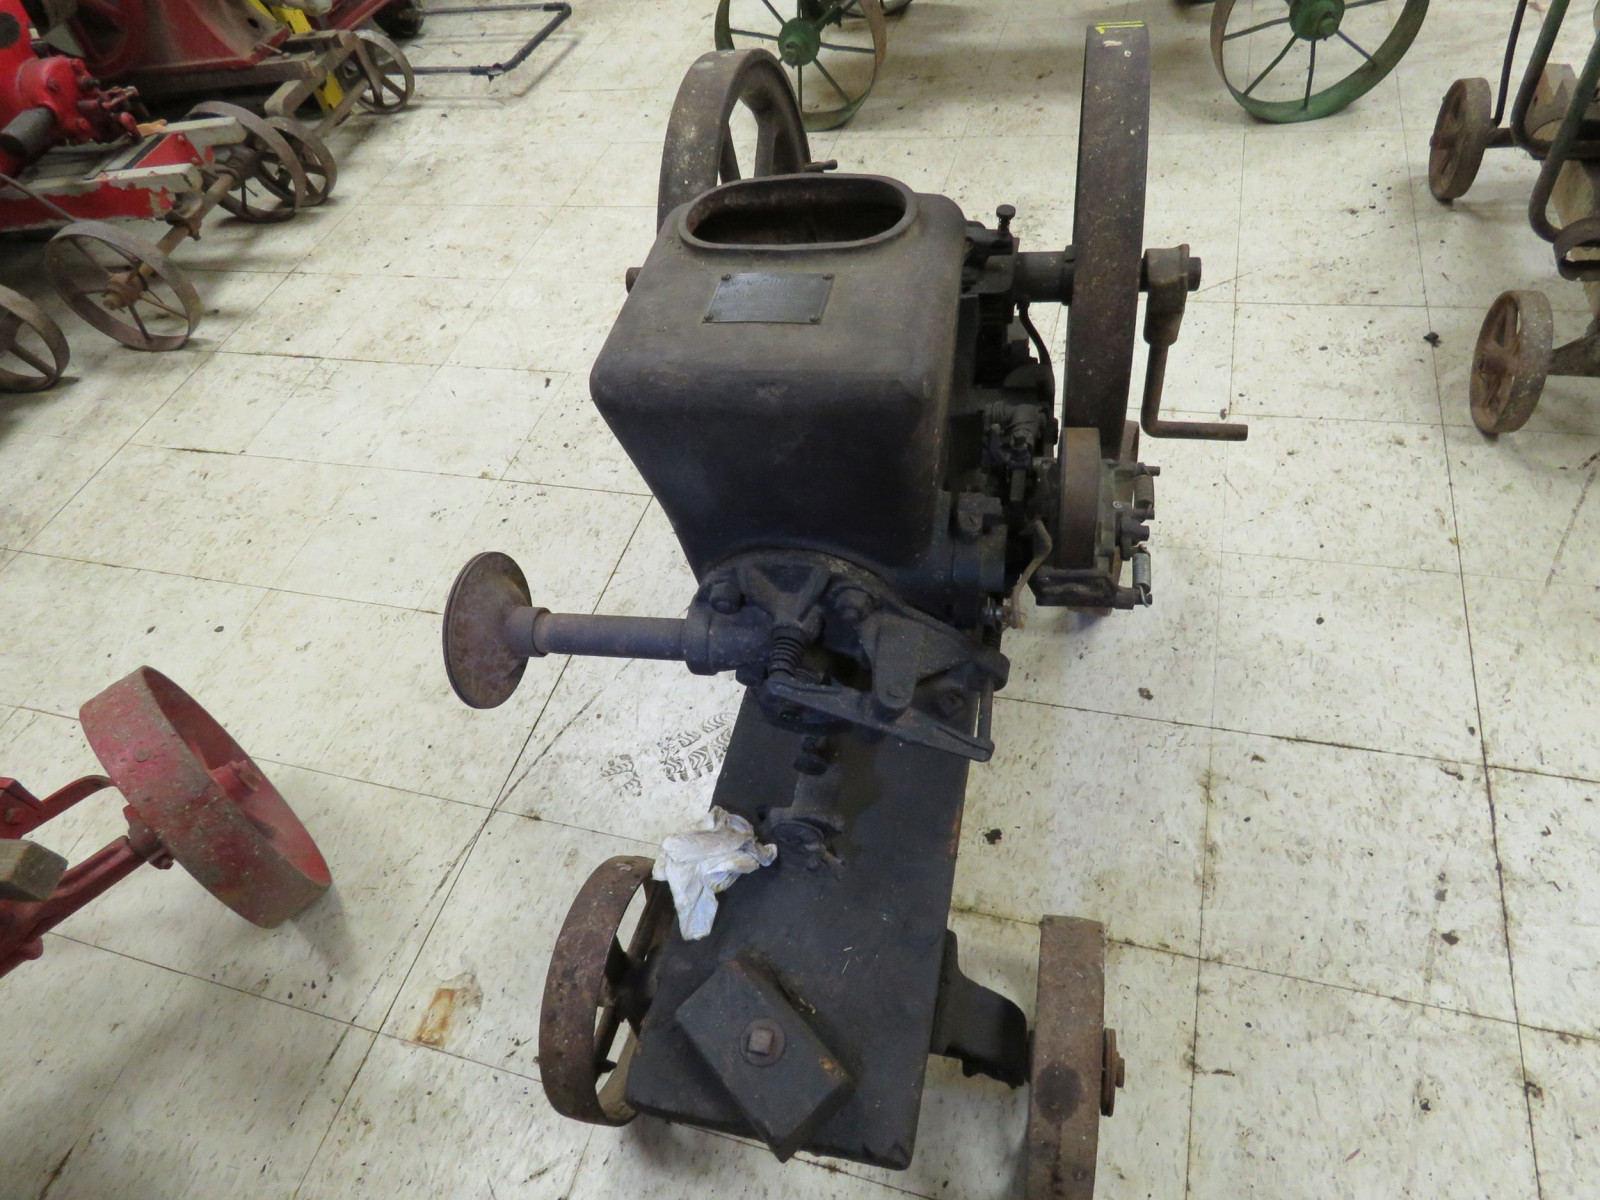 Worthington 1 1/2hp Gasoline Engine On Cart - Image 4